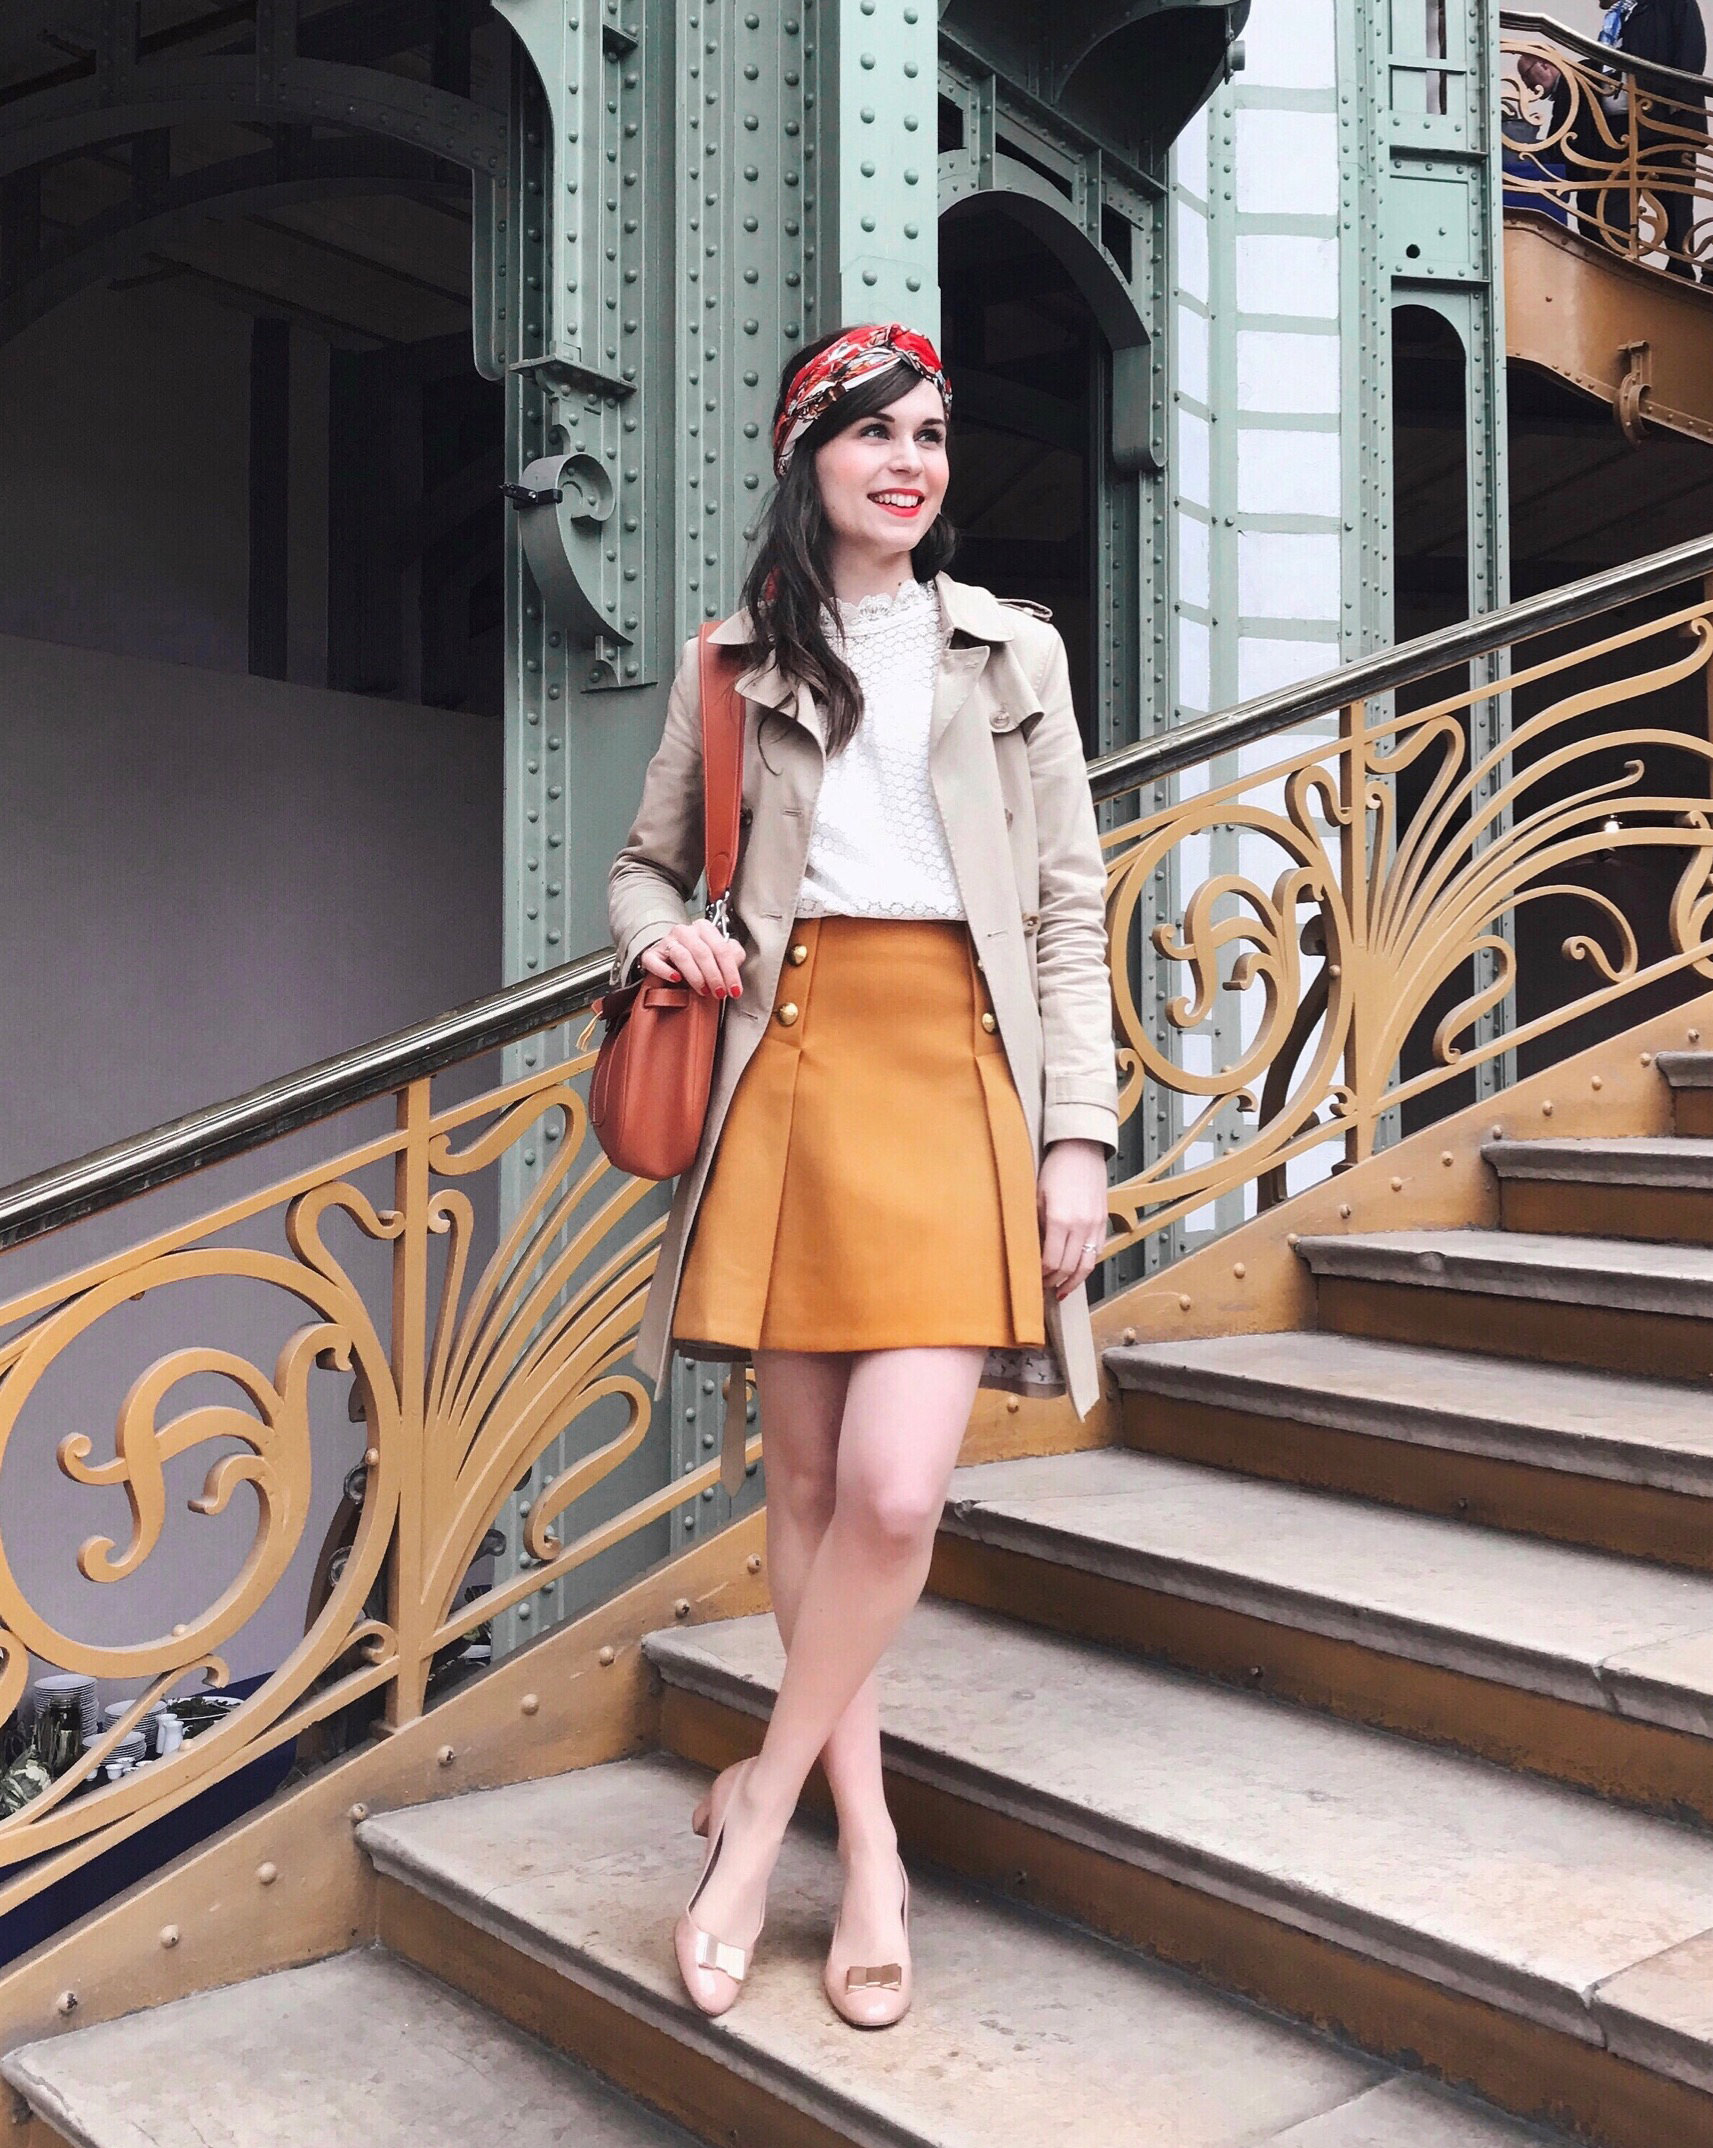 Blog-Mode-And-The-City-Lifestyle-Cinq-Petites-Choses-212-saut-hermes